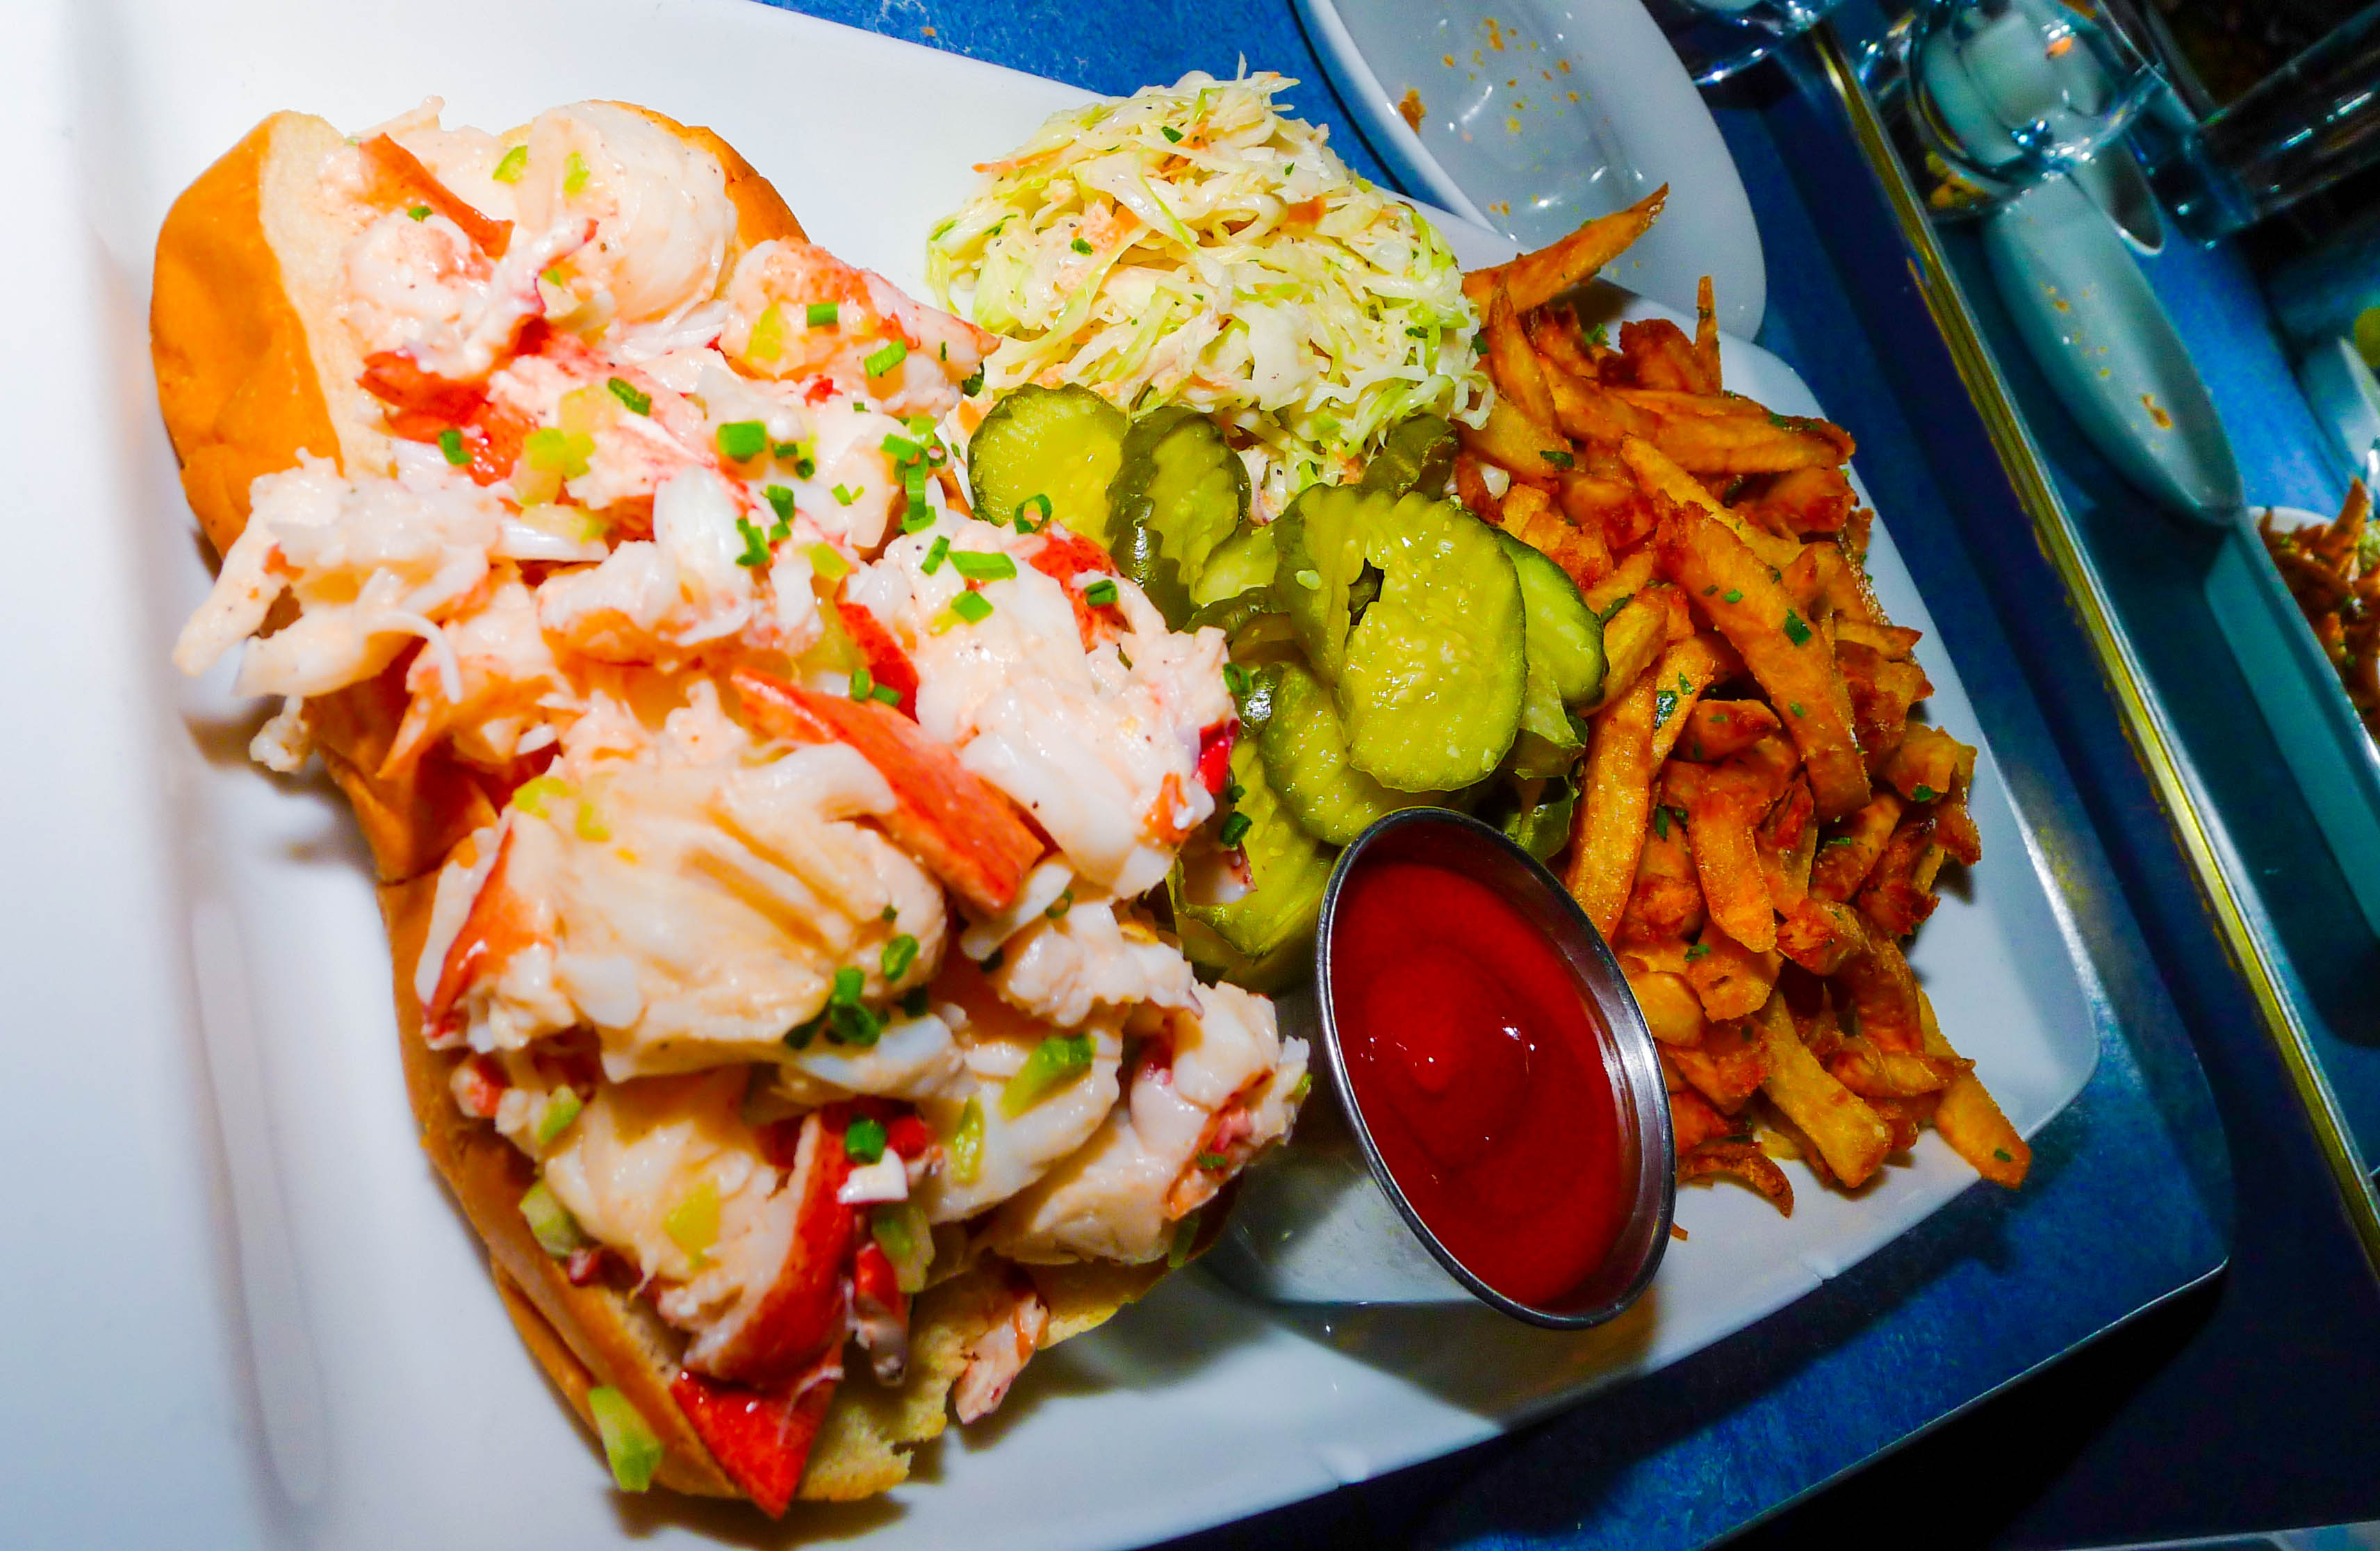 Lobster Roll Bg Oysters South End Boston Ma Night | Lobster House